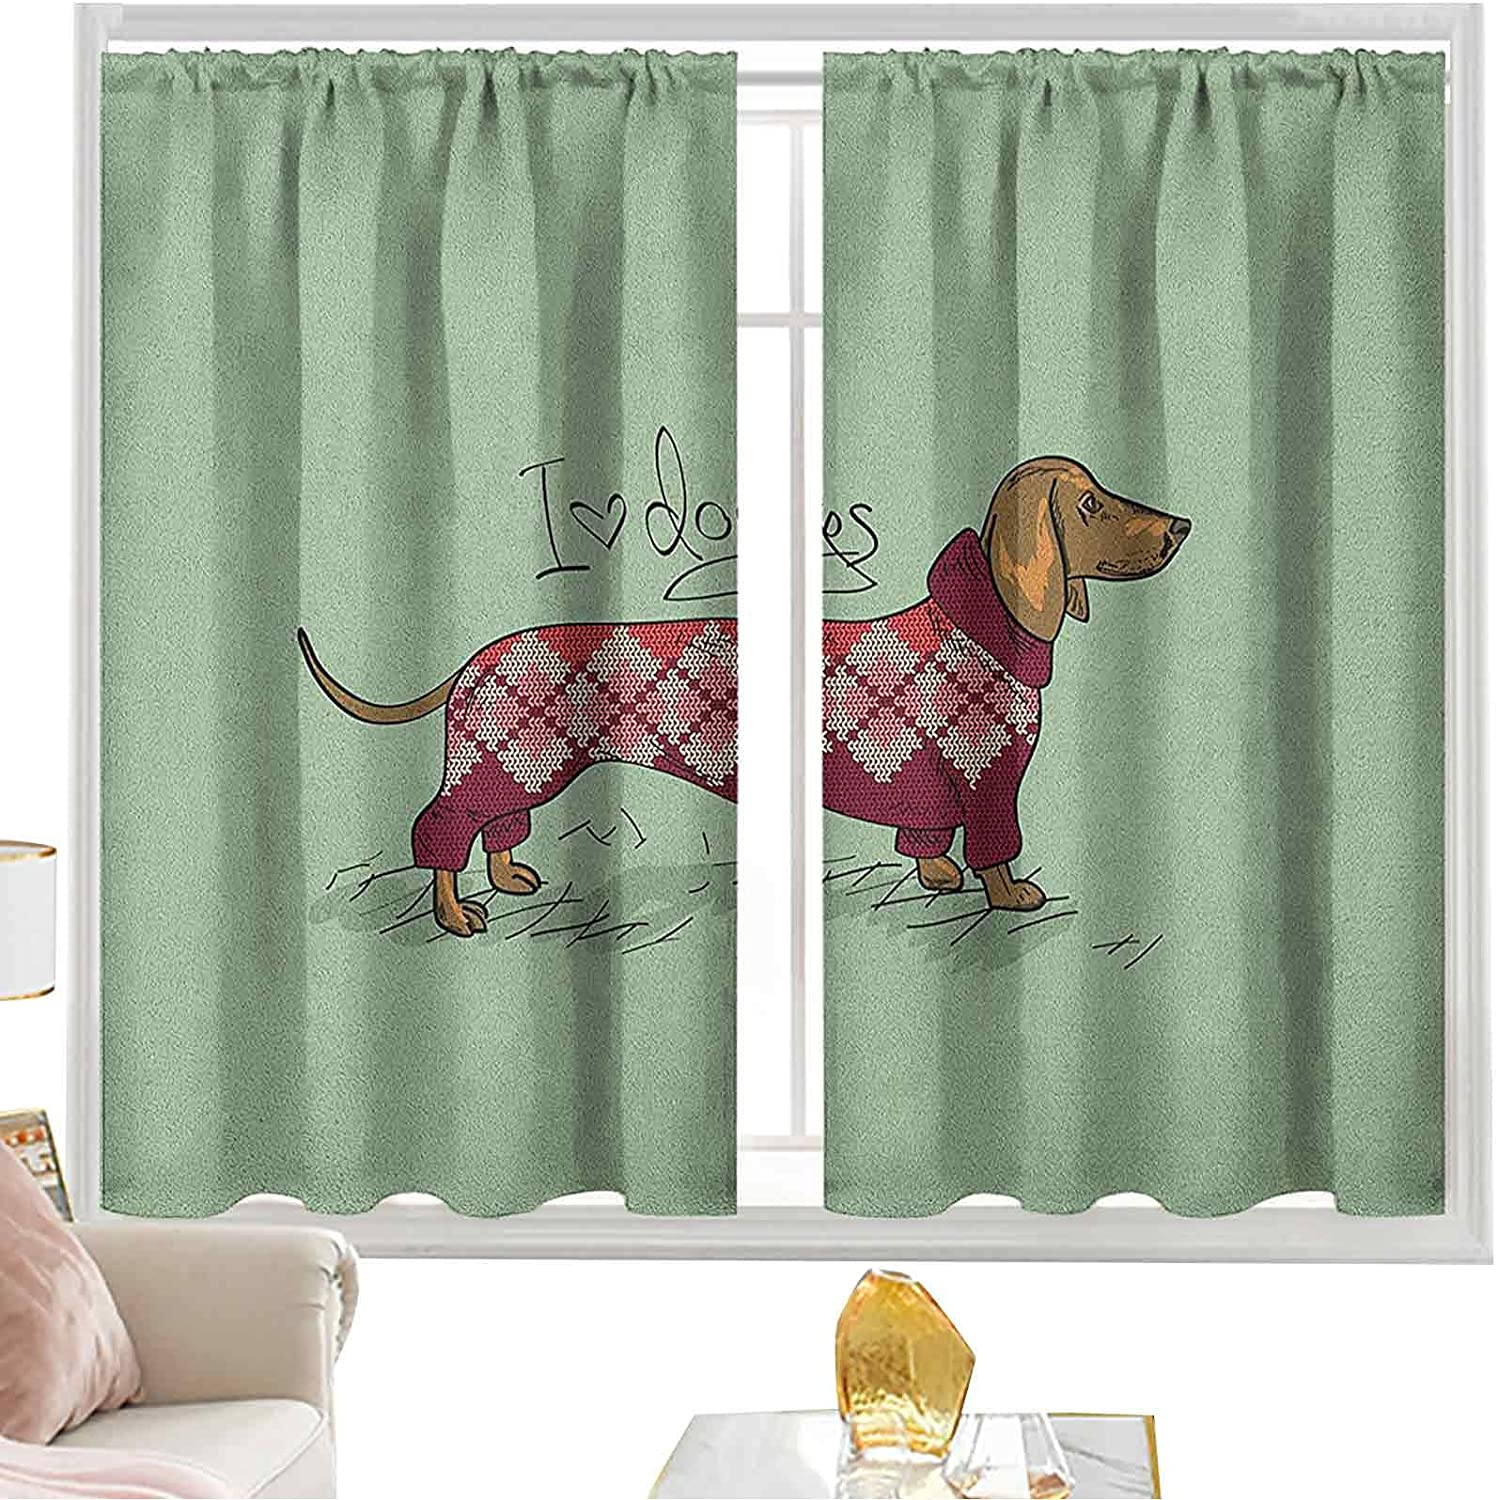 Rod Pocket Curtains Cute Bargain Dog Knitted in Sweater Detailed Design Recommended